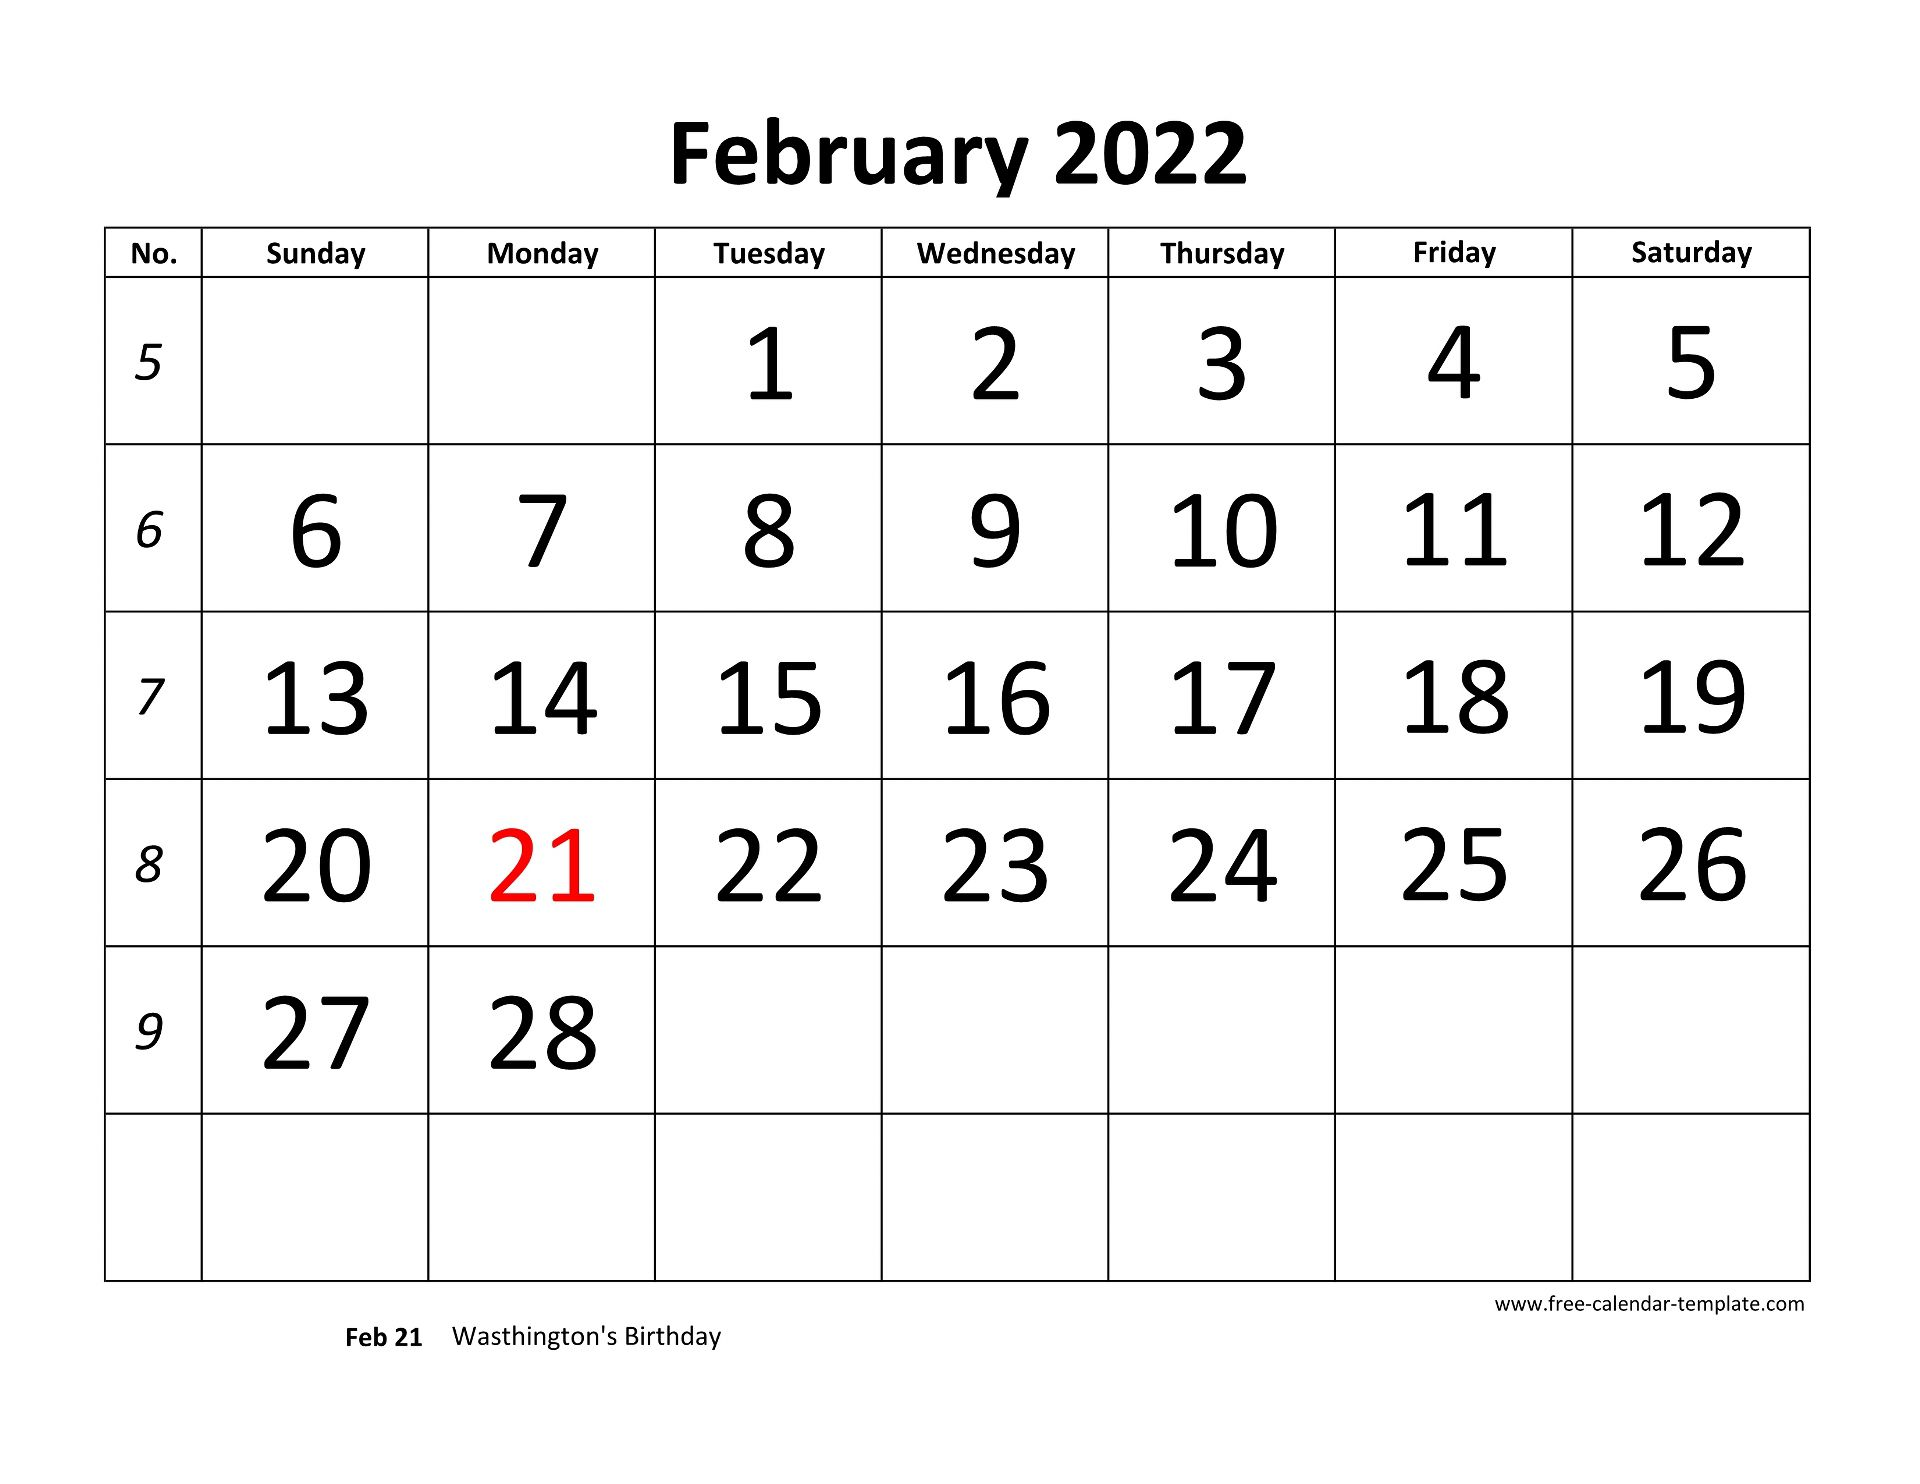 February 2022 Calendar designed with large font ...